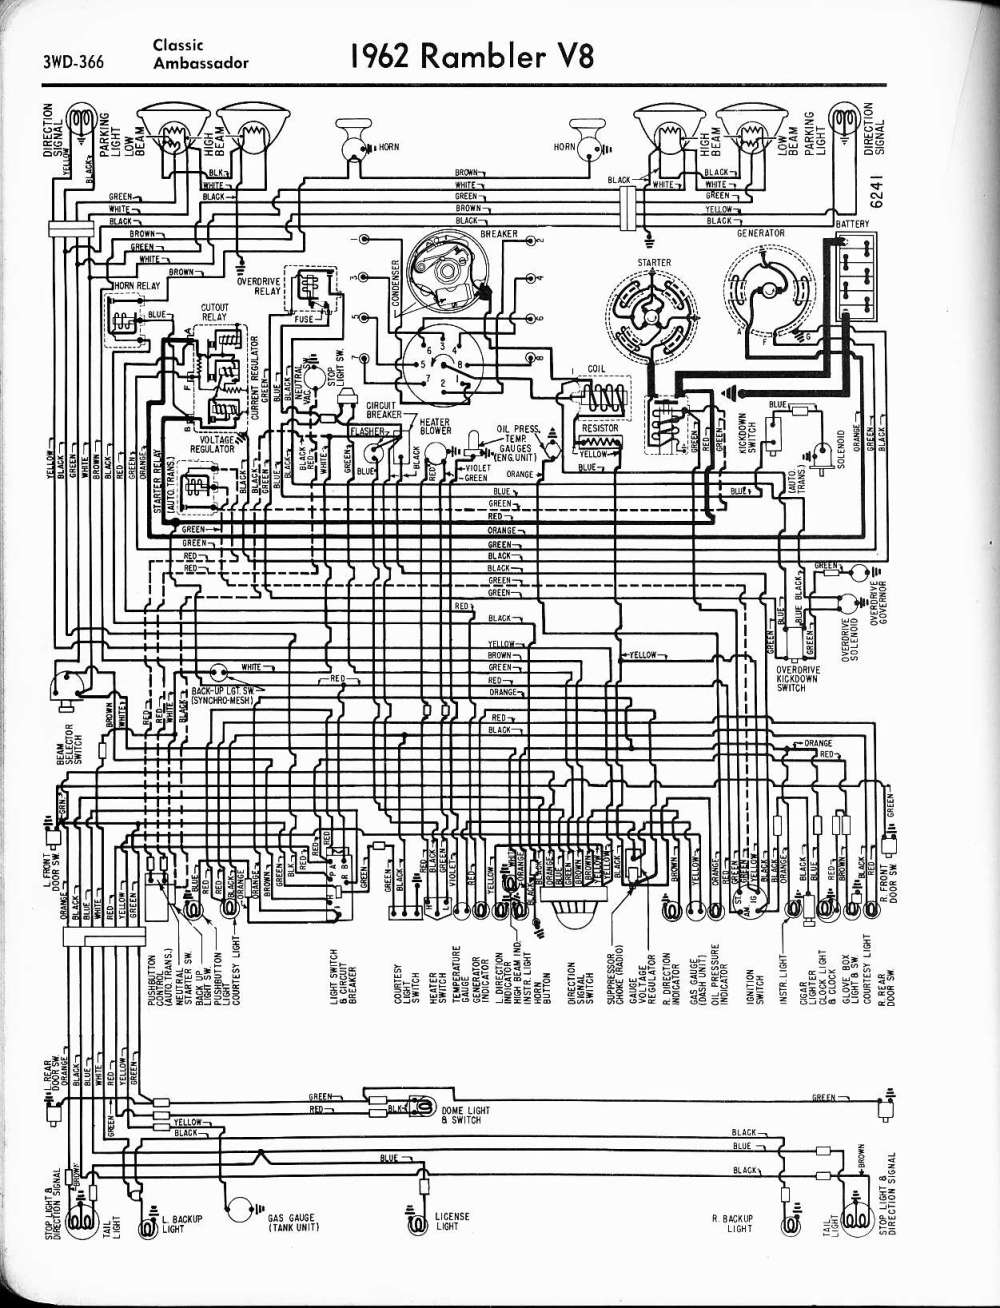 medium resolution of rambler wiring diagrams the old car manual project wiring diagrams of 1963 rambler 6 american